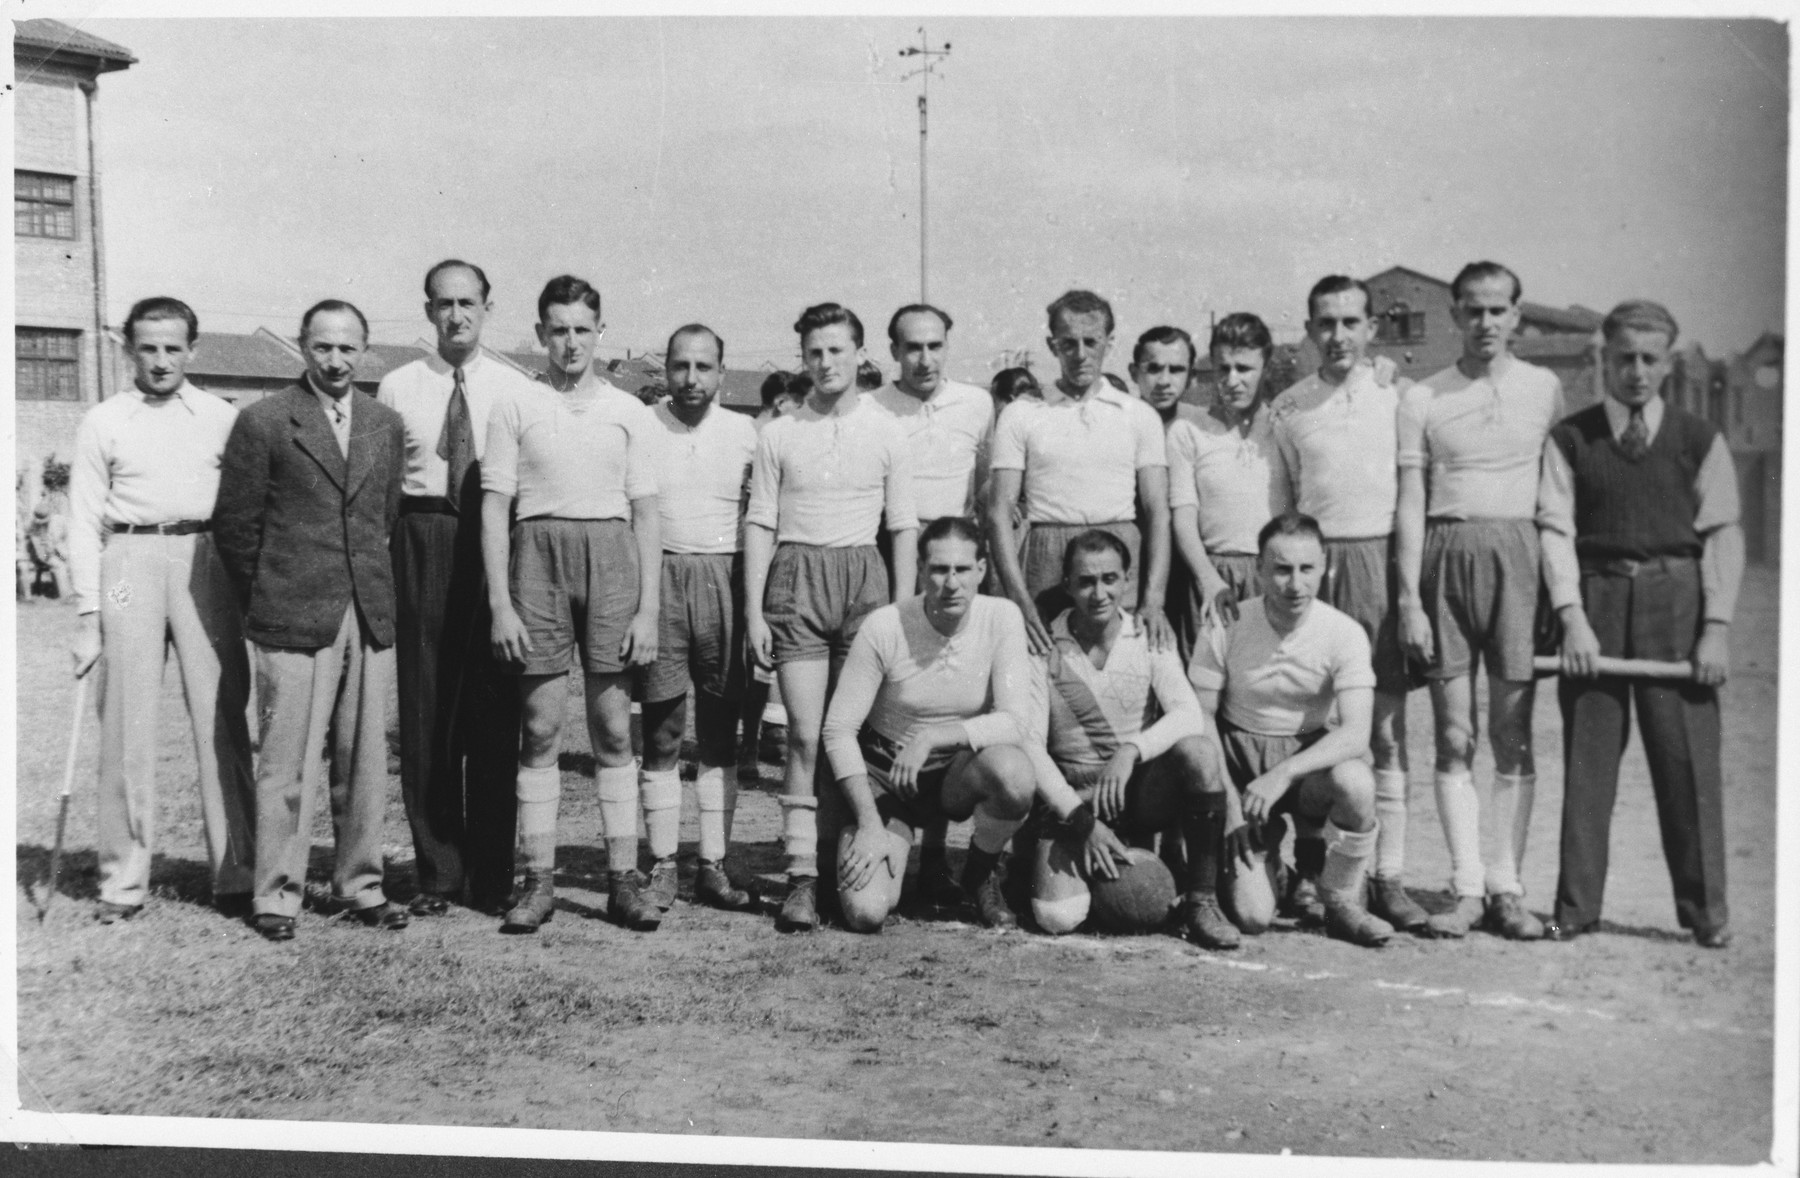 Paul Komor (standing second from the left) poses with members of the International Committee soccer team at a match between the I.C. and Shanghai Jewish Chronicle teams in Shanghai.  The soccer match was held as a fundraiser for the I.C.'s Milk Fund.  One photograph from a second International Committee album prepared for I.C. secretary Paul Komor.